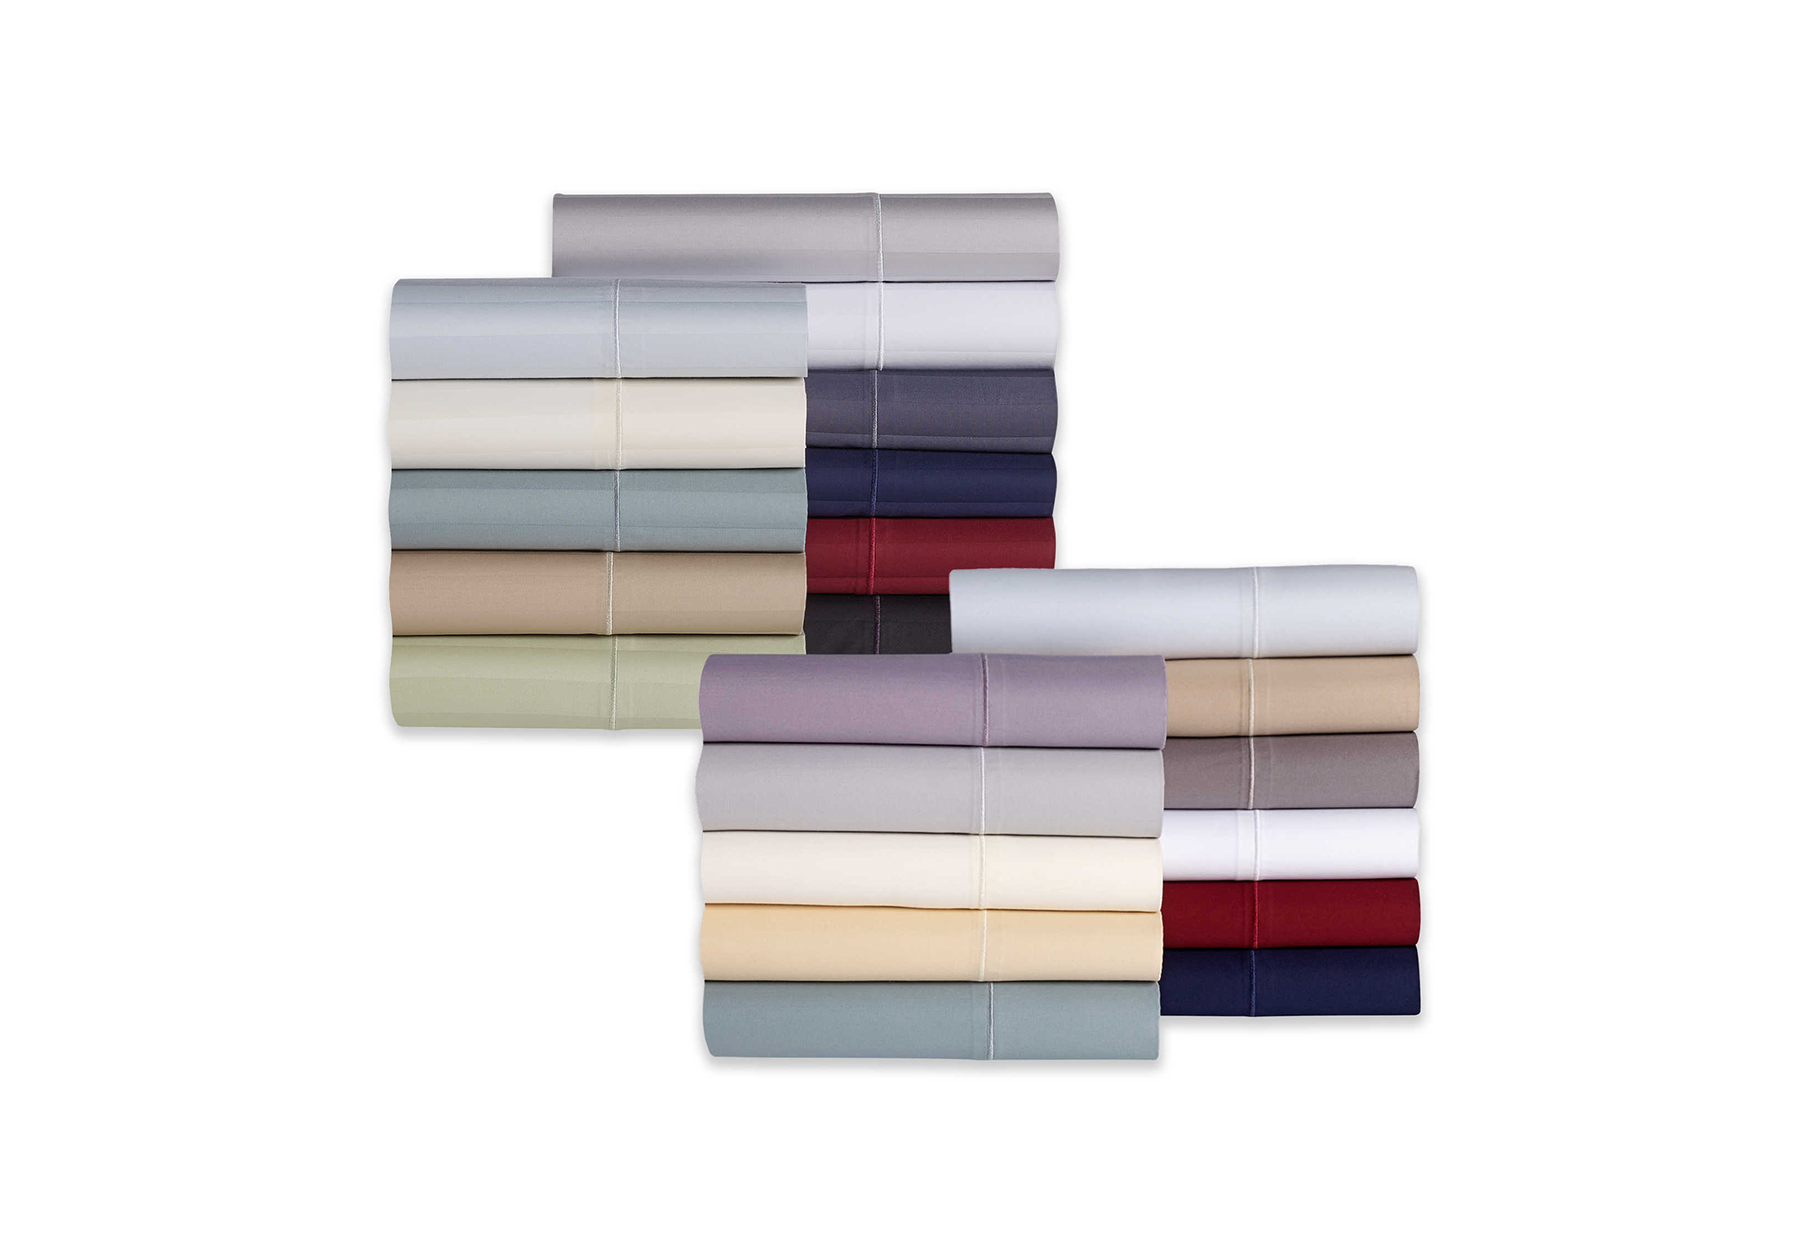 Wamsutta 500 Thread Count Pimacott Sheet Set (All The Luxe Sheets Our Editors Love)